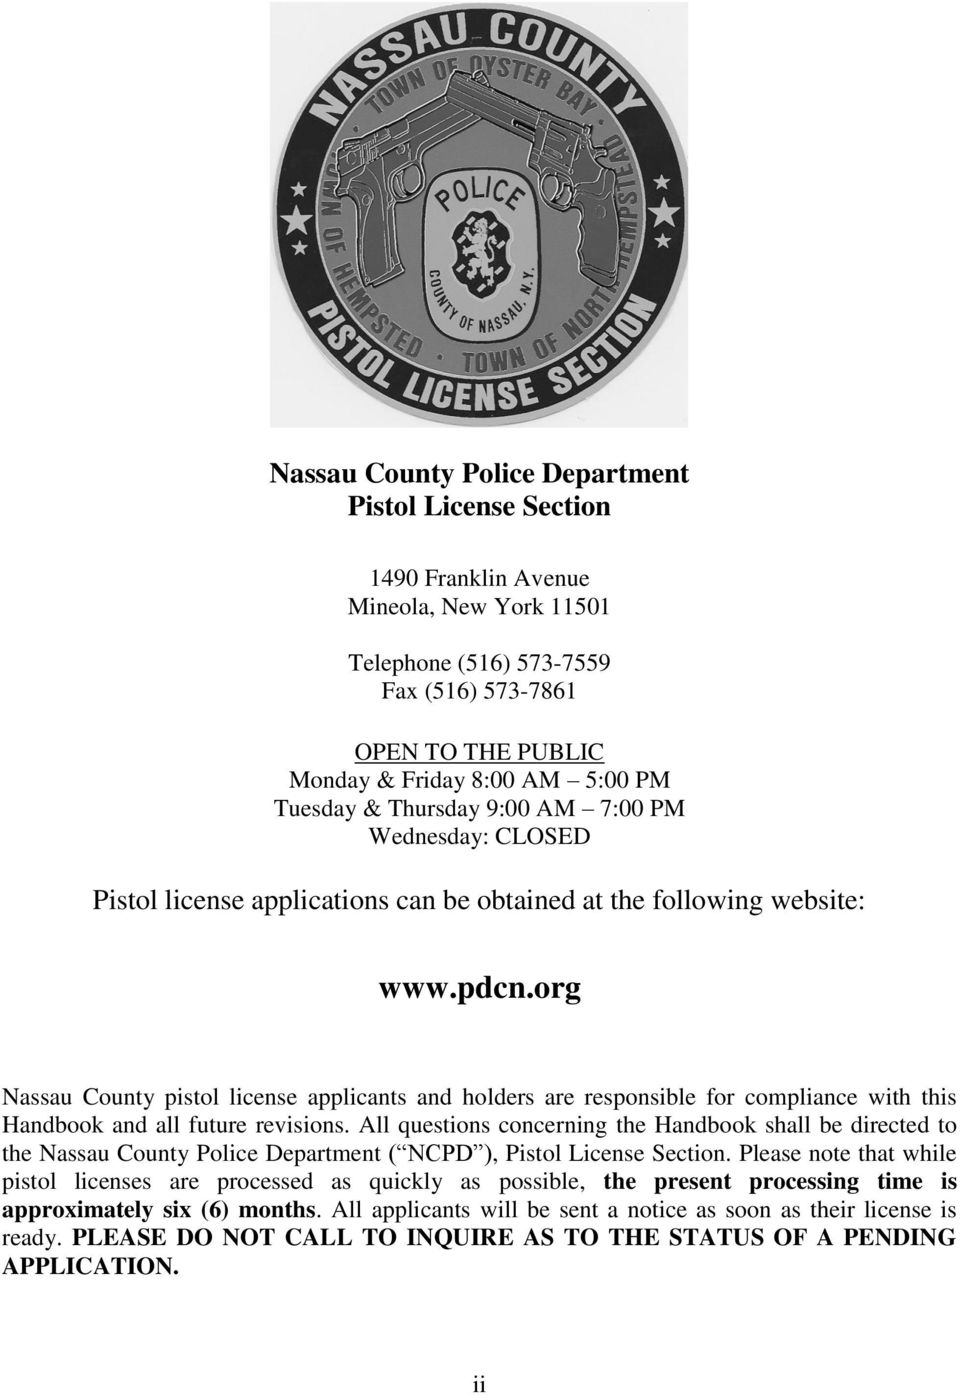 NASSAU COUNTY POLICE DEPARTMENT PISTOL LICENSE SECTION